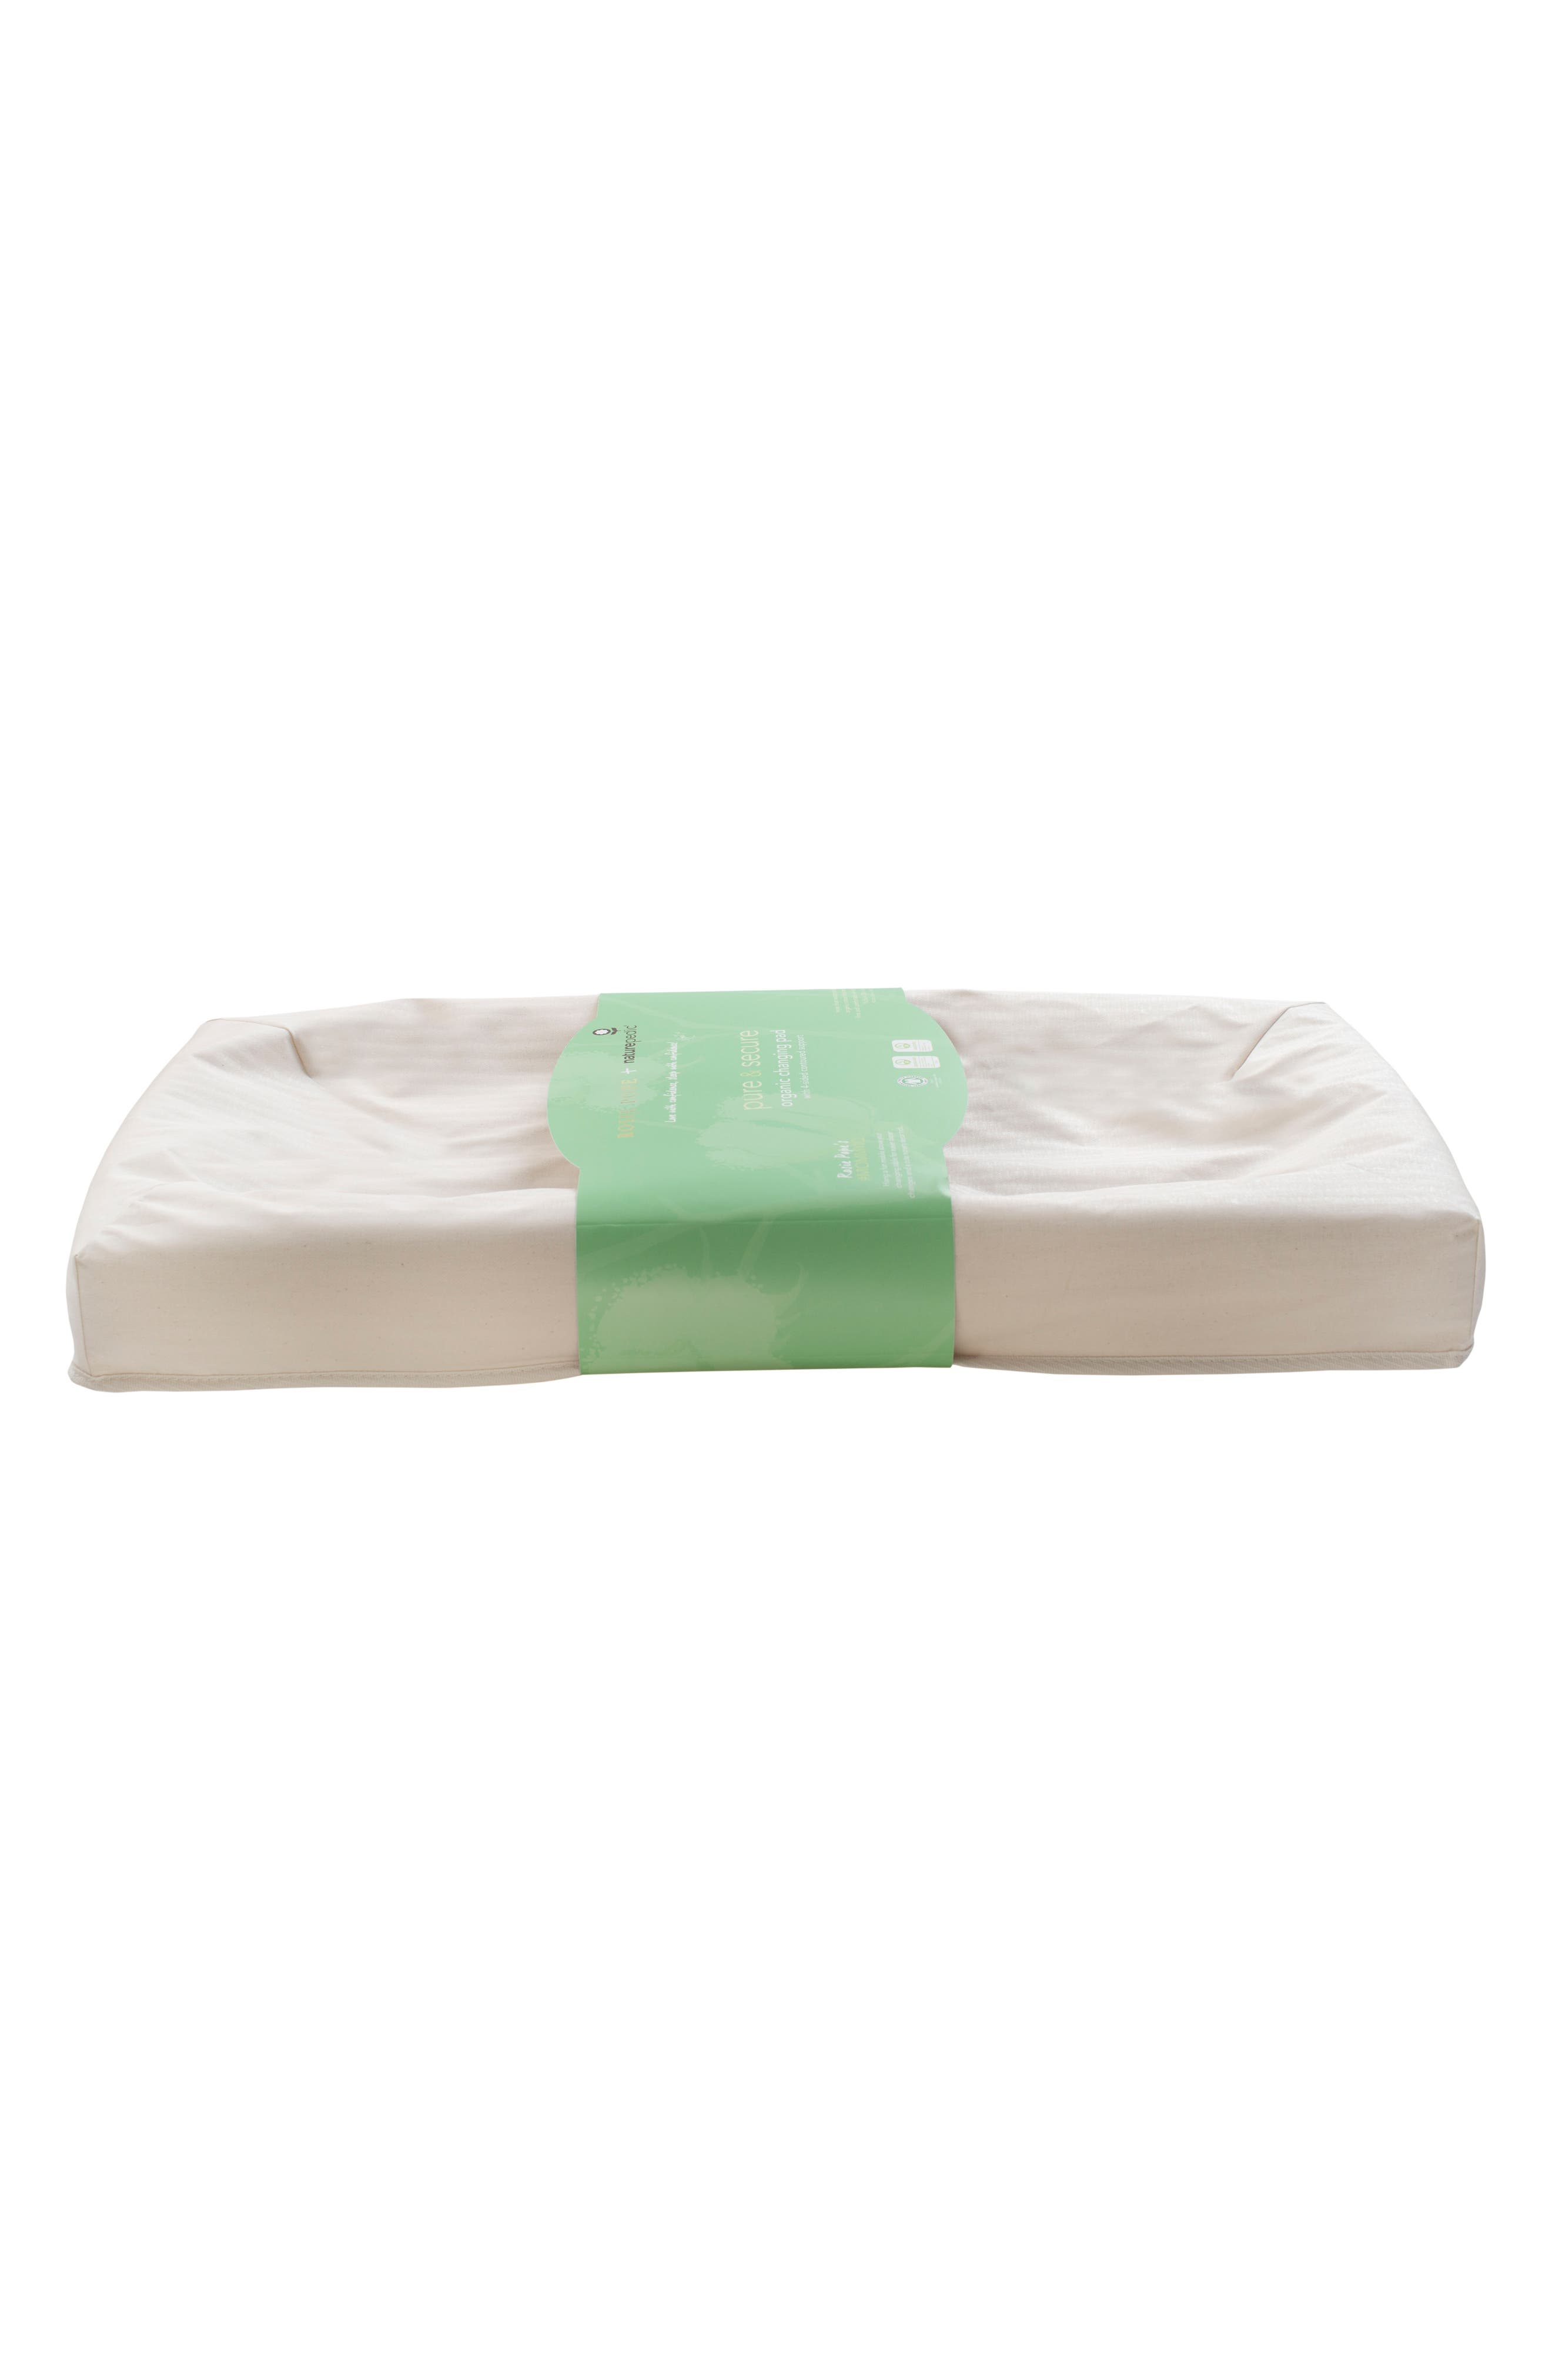 x Rosie Pope Pure & Secure Four-Sided Changing Pad,                             Alternate thumbnail 2, color,                             250